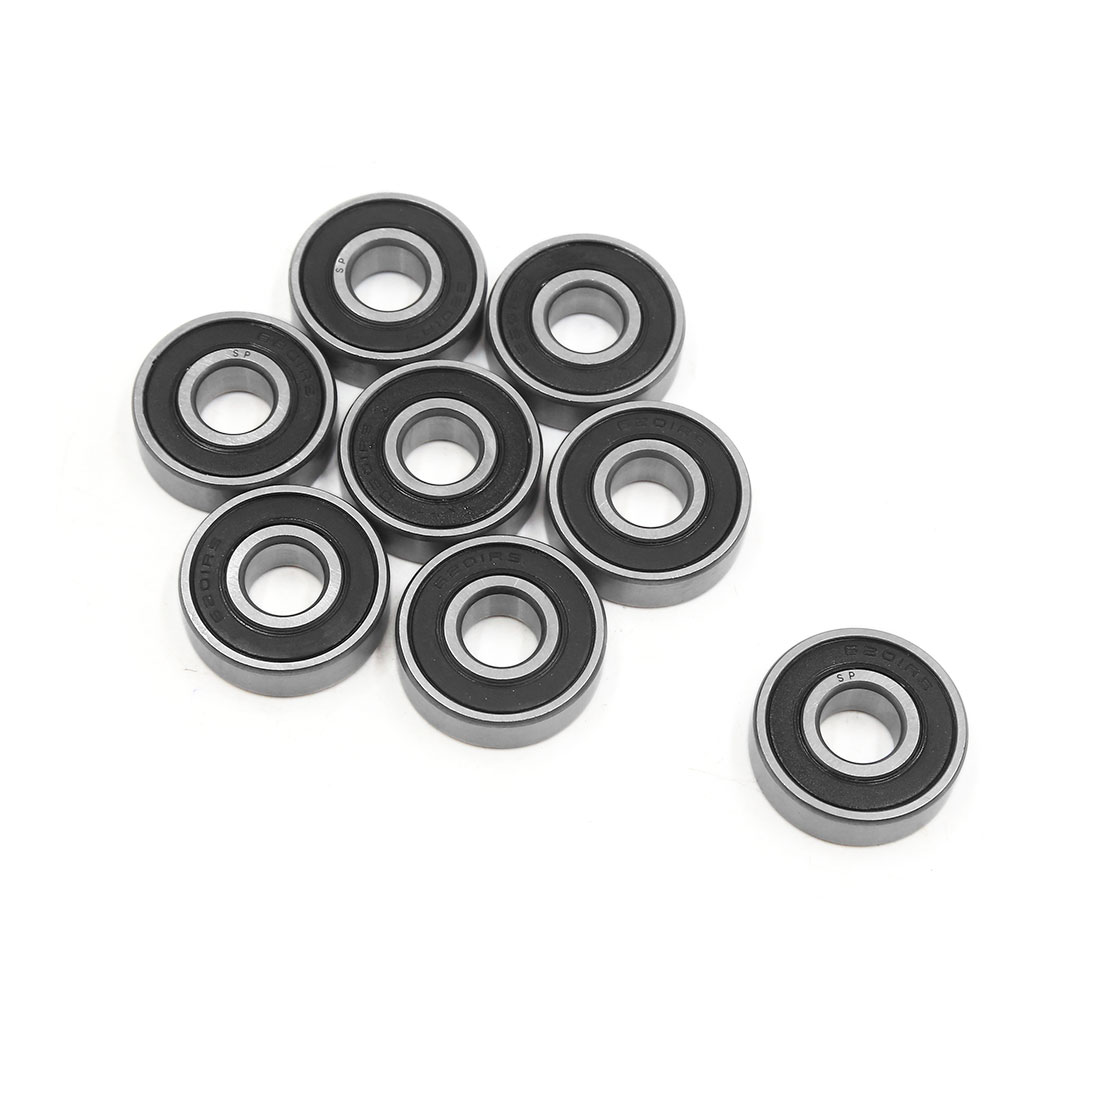 8pcs 6201-2RS Scooter Motorcycle Sealed Deep Groove Ball Bearing 32 x 12 x 10mm